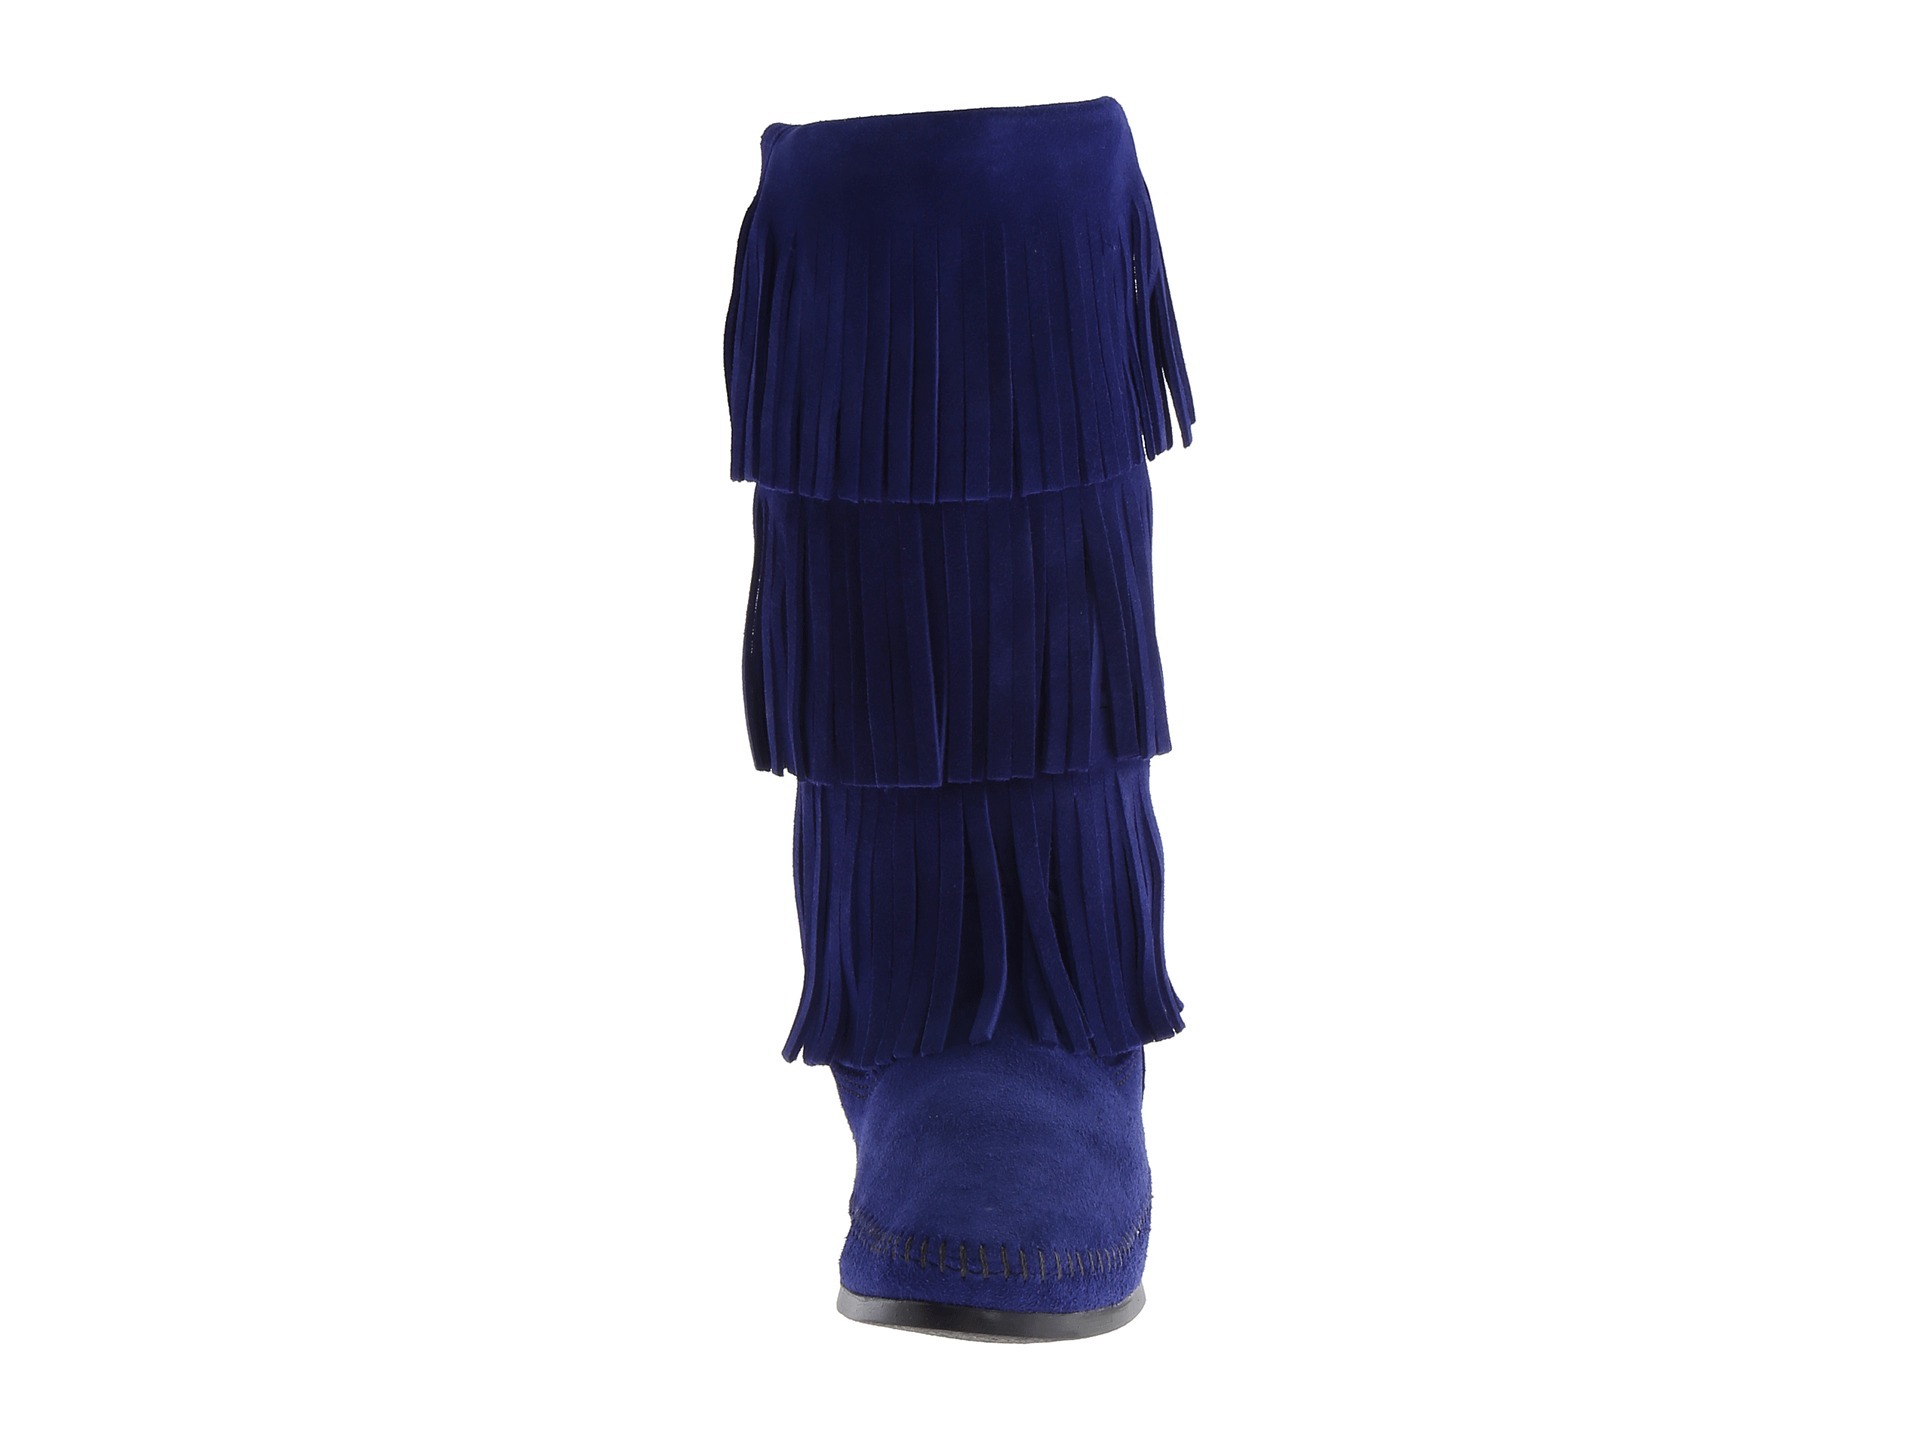 Minnetonka 3 Layer Fringe Boot in Blue | Lyst